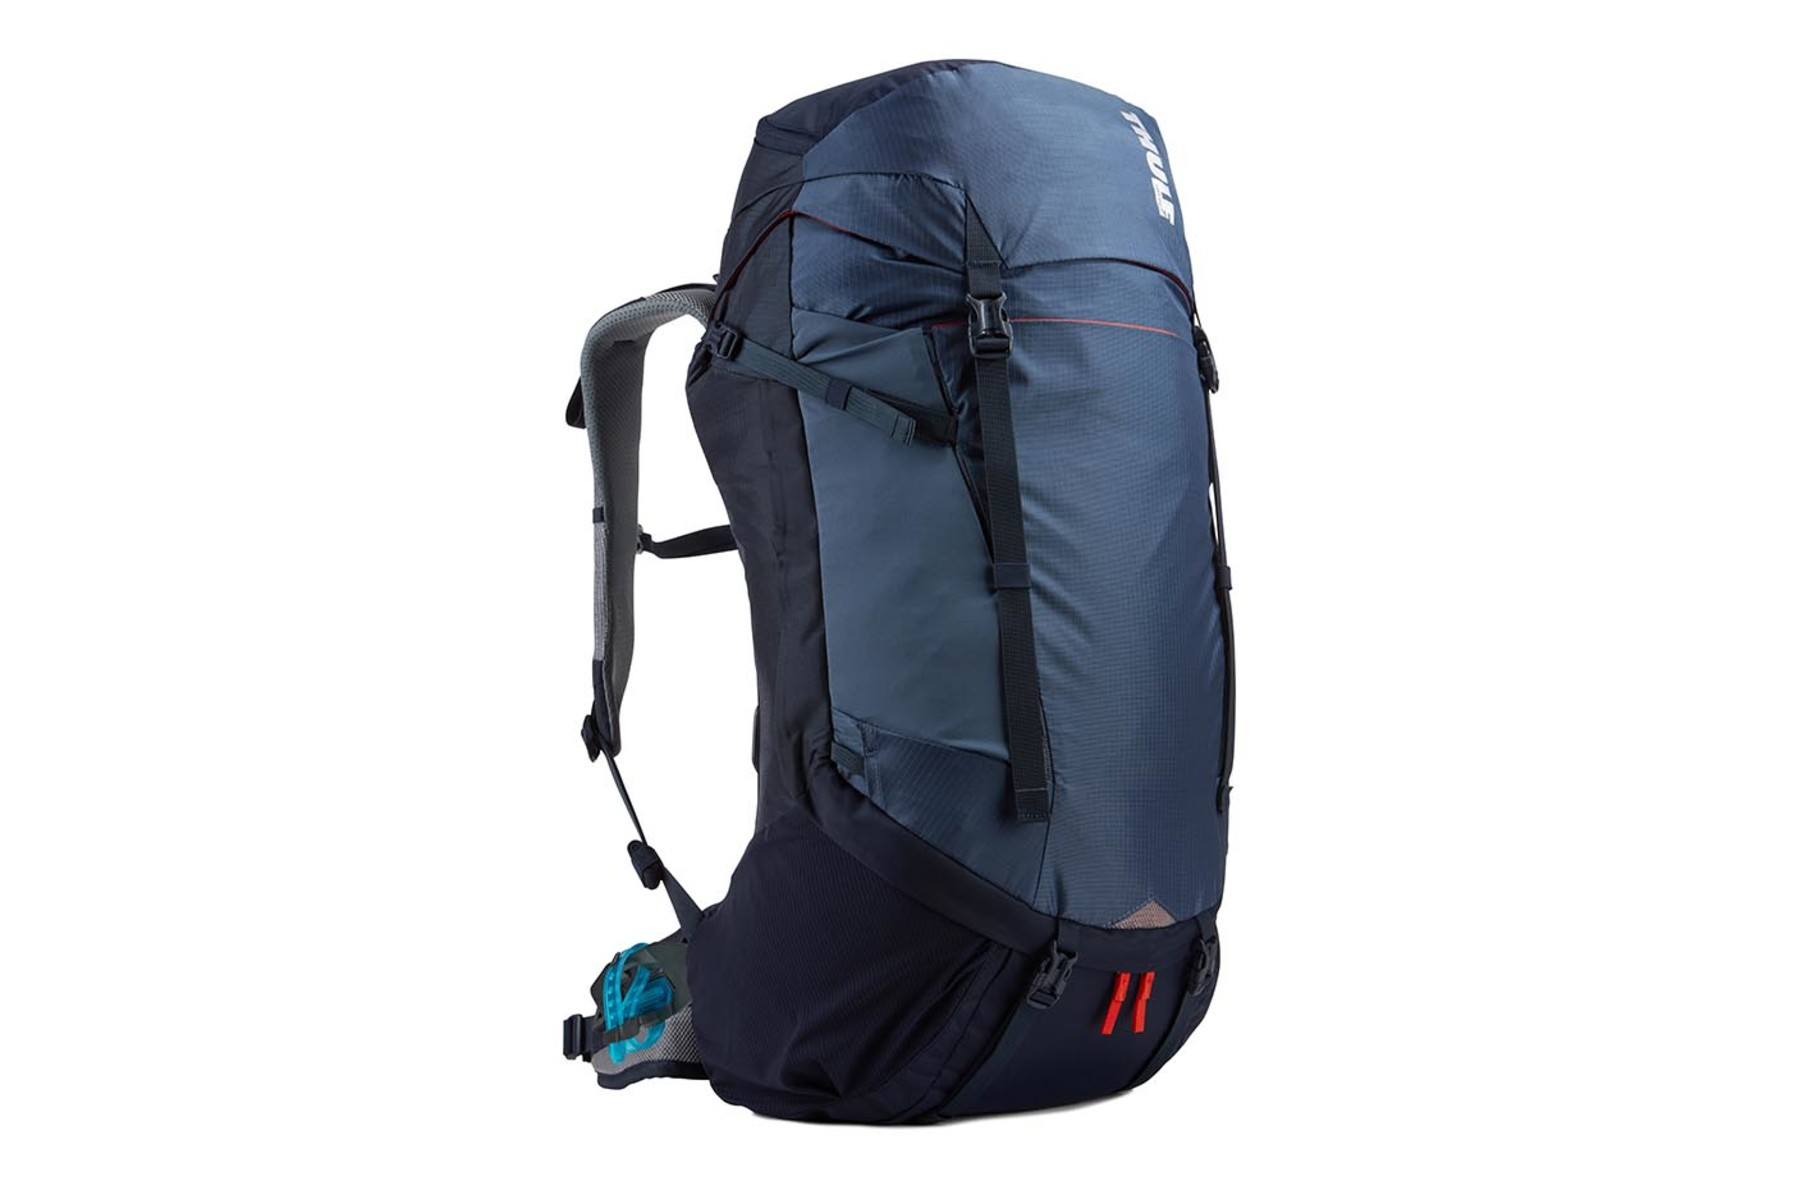 Hiking backpack-Thule Capstone 50L Men's